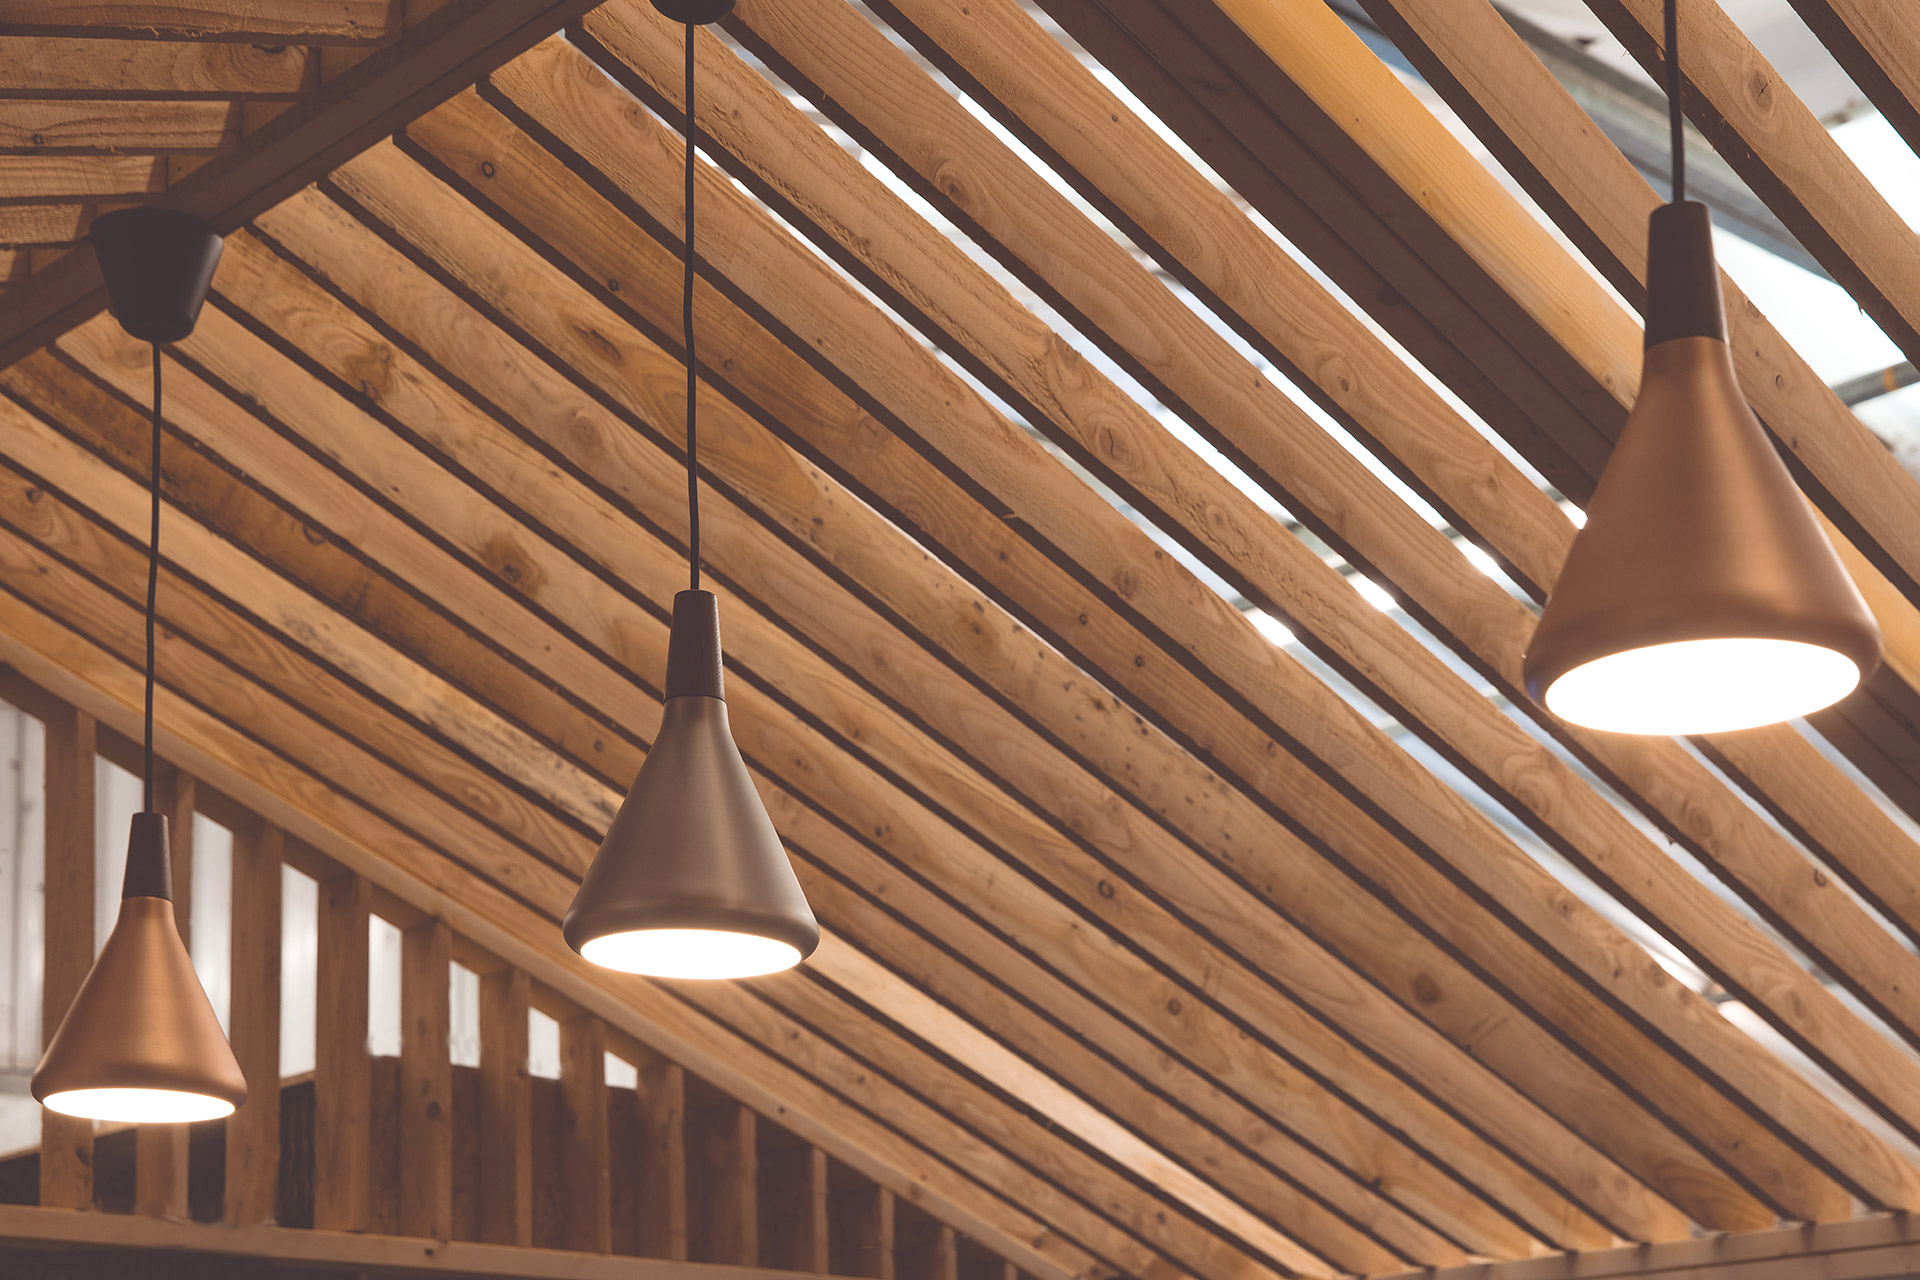 feature lighting in timber slat hut workshop